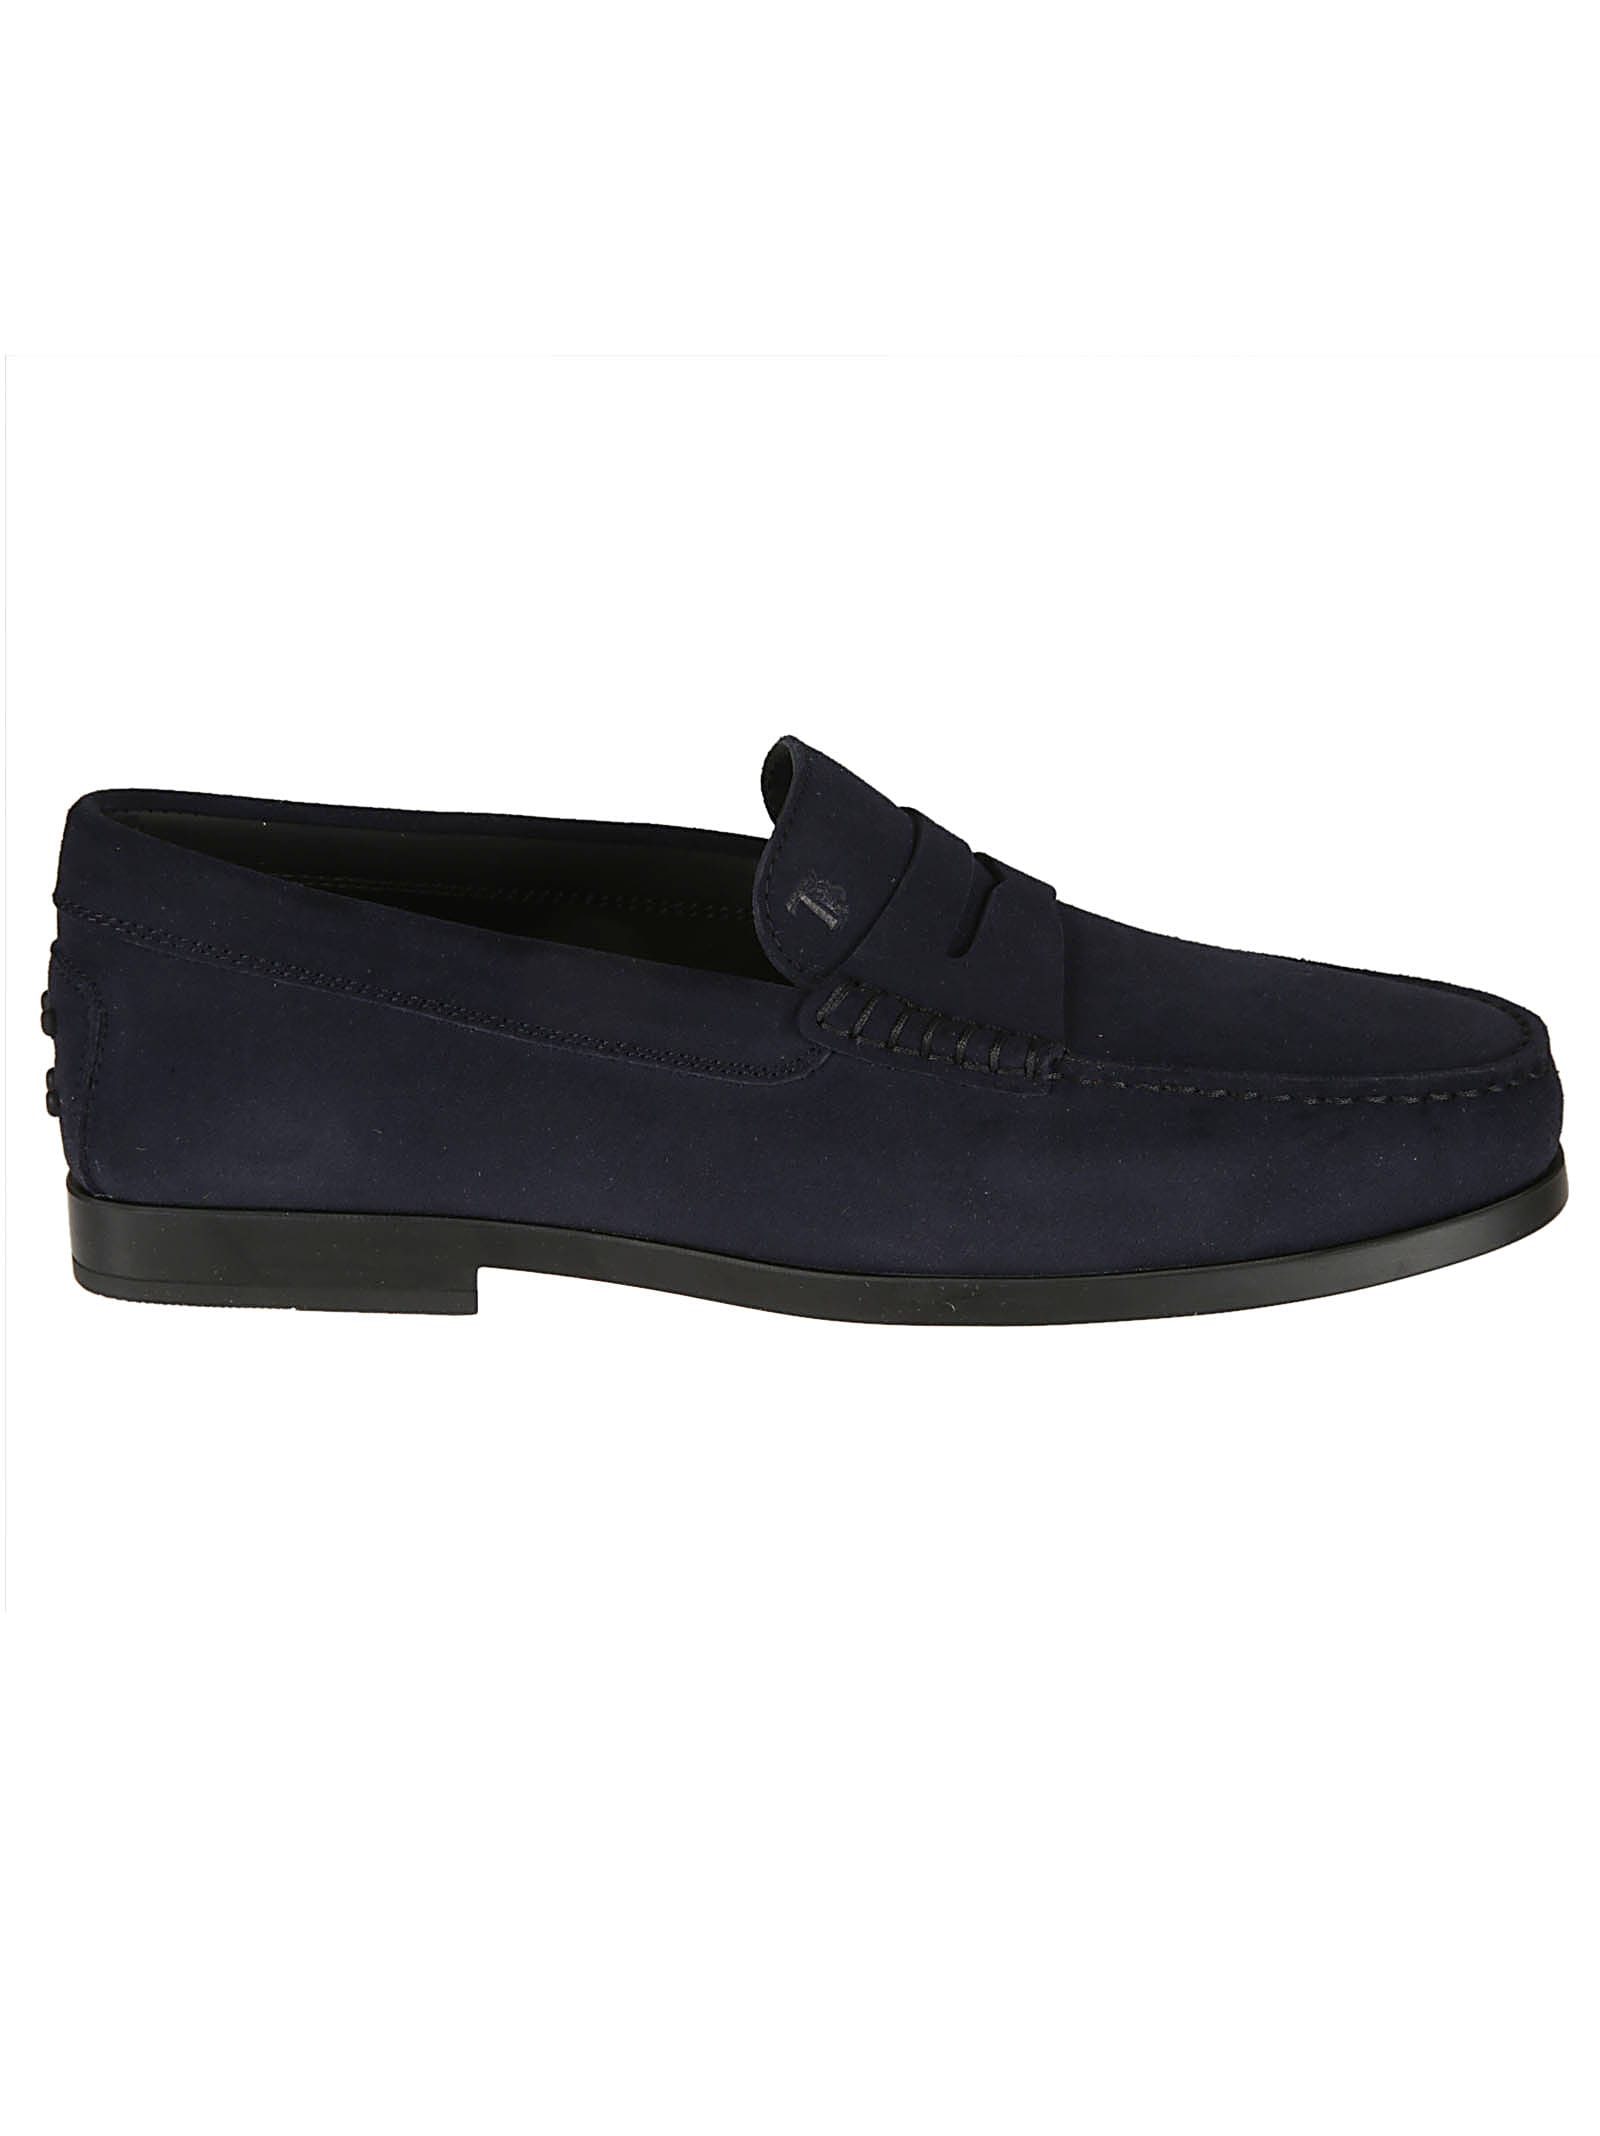 Tods Logo Plaque Loafers